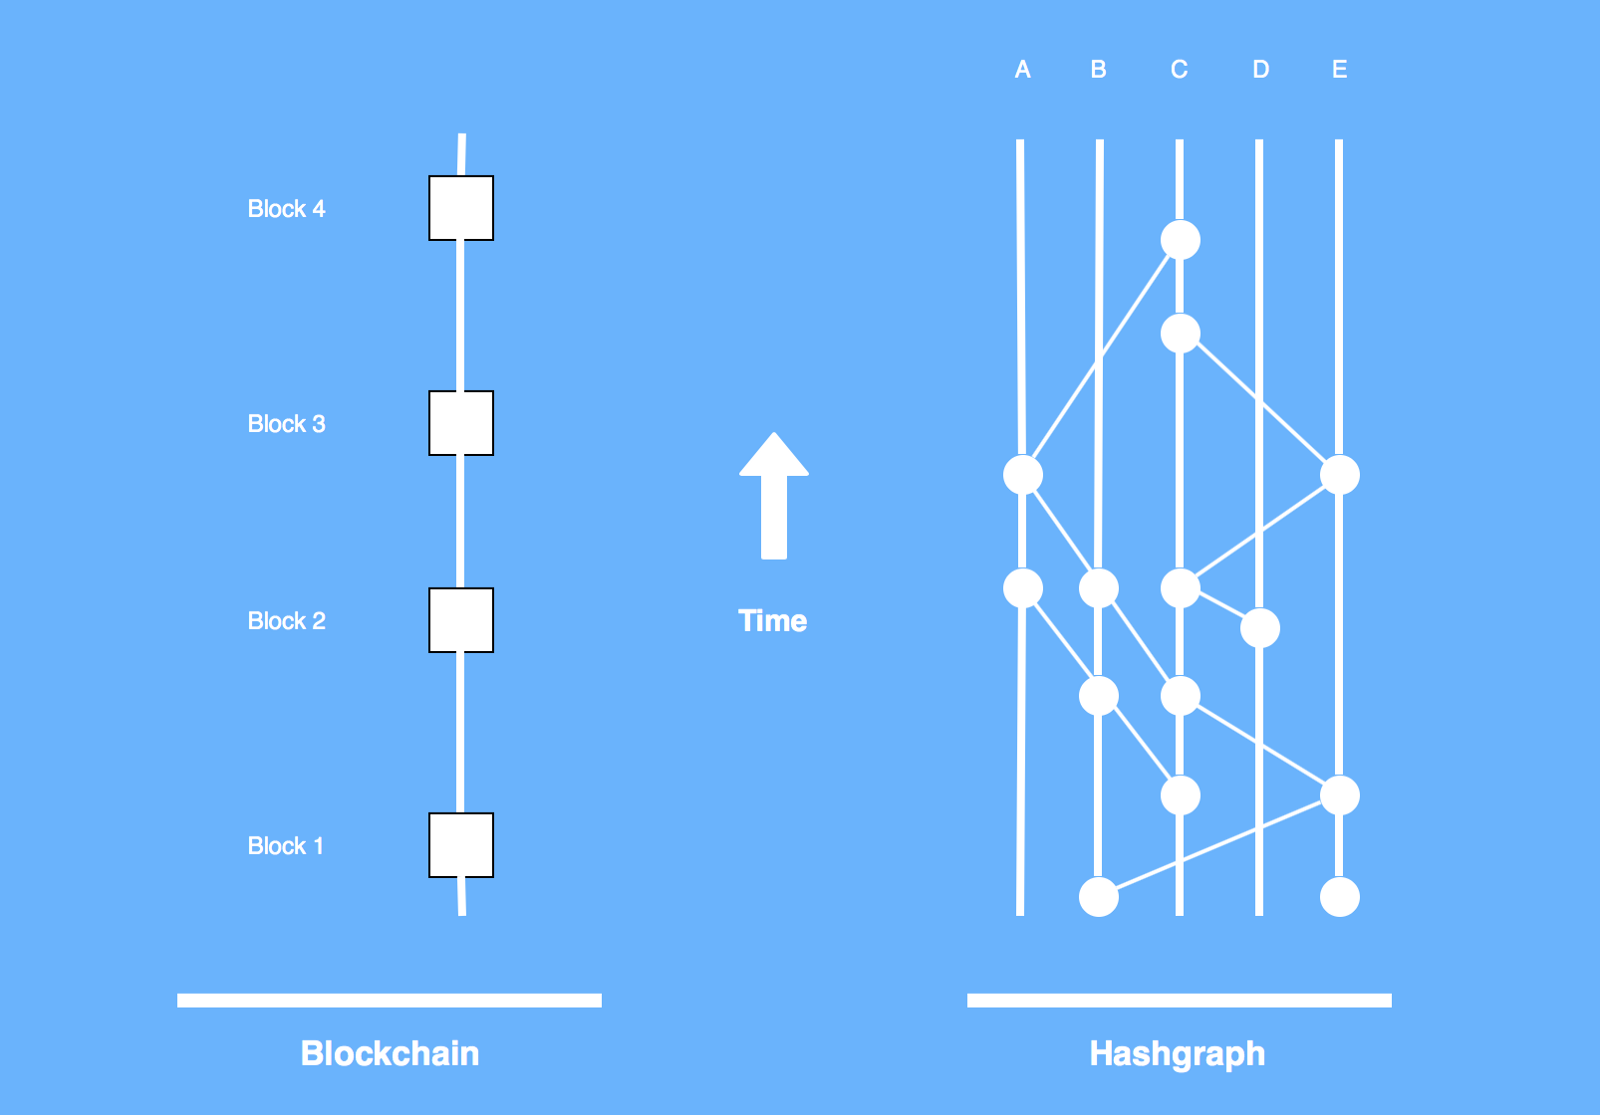 /blockchains-vs-hashgraphs-66a2058c8b43 feature image